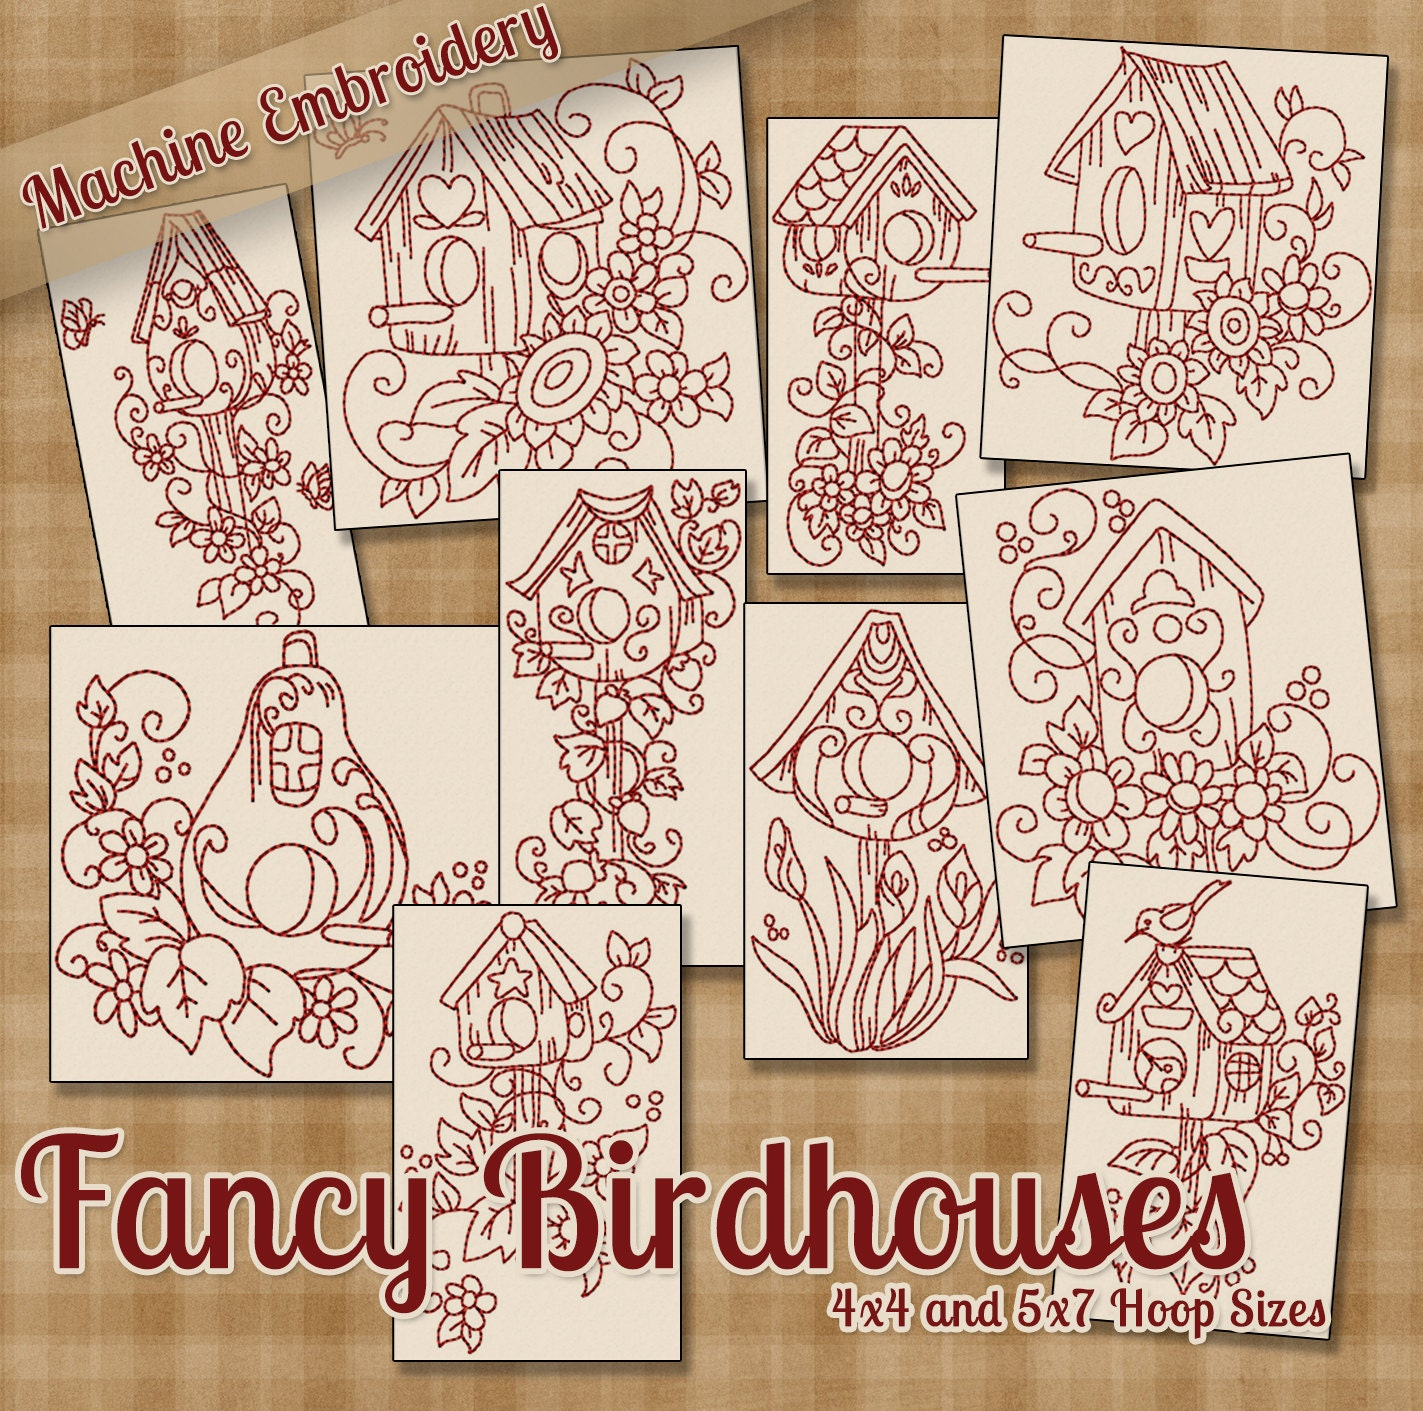 Redwork fancy birdhouses machine embroidery patterns designs